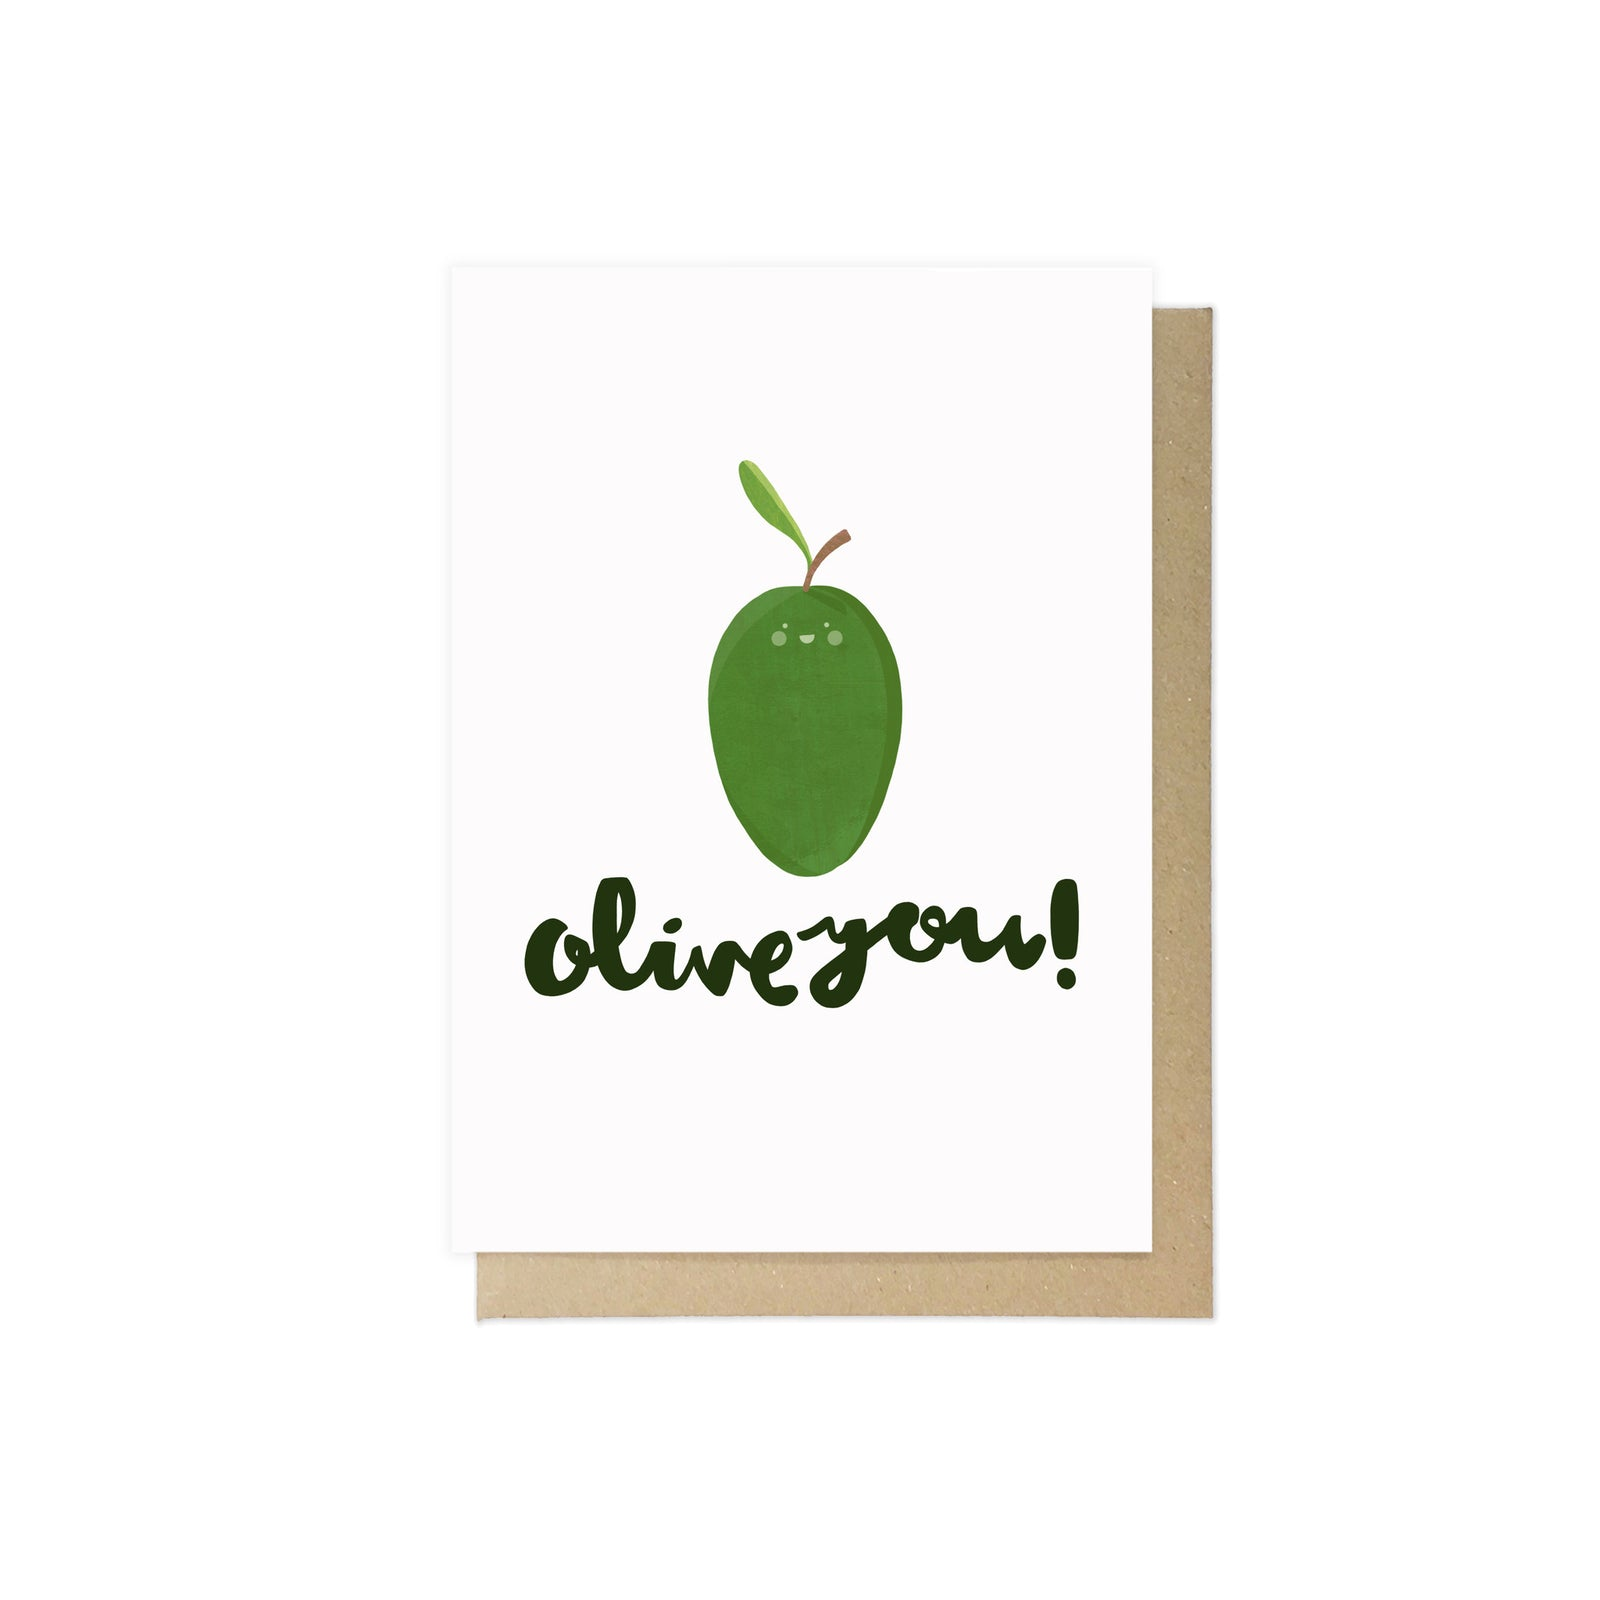 Olive You by Lauren Radley